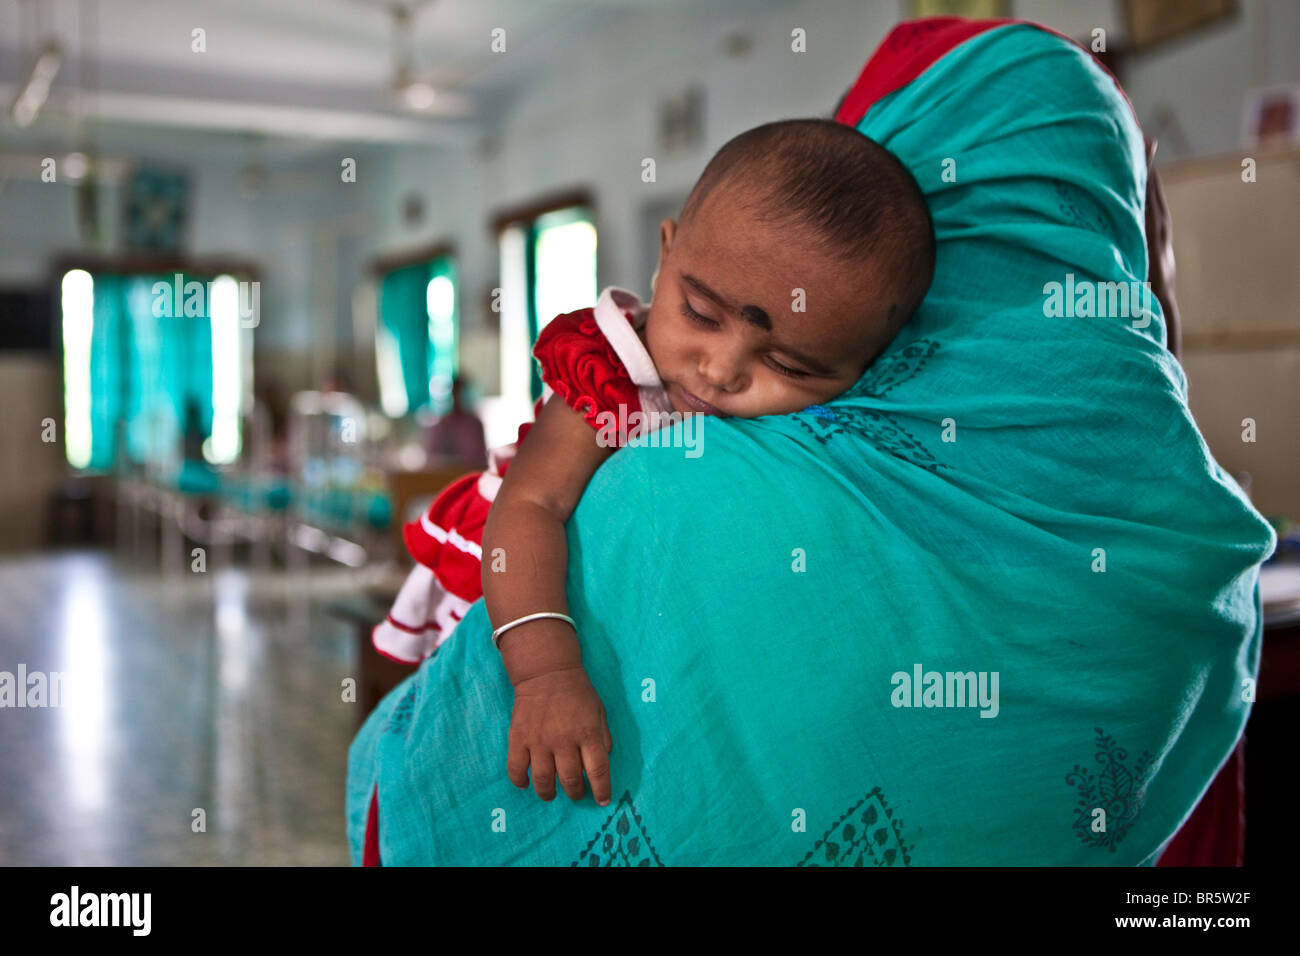 A mother brings her baby to the Child In Need Institute emergency ward. NGO led health care. - Stock Image